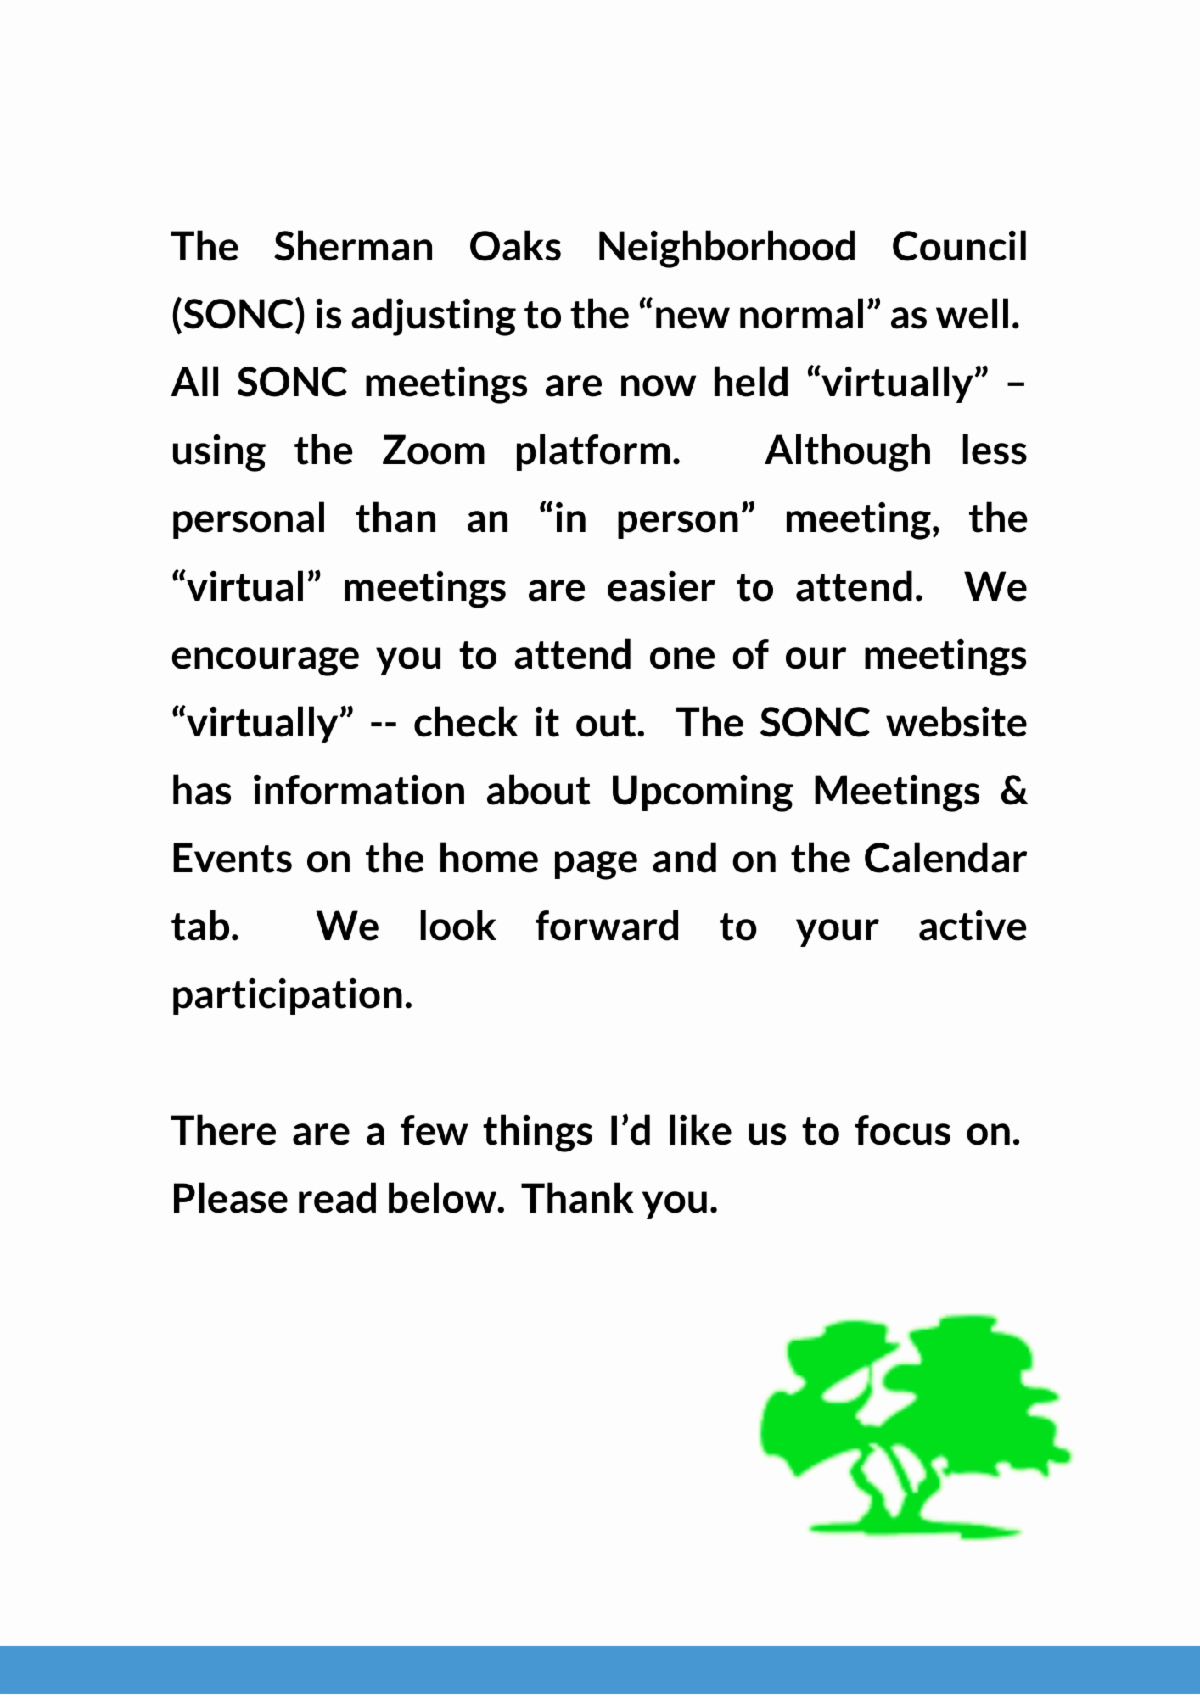 We look forward to your active participation. There are a few things Id like us to focus on. Please read below. Thank you.